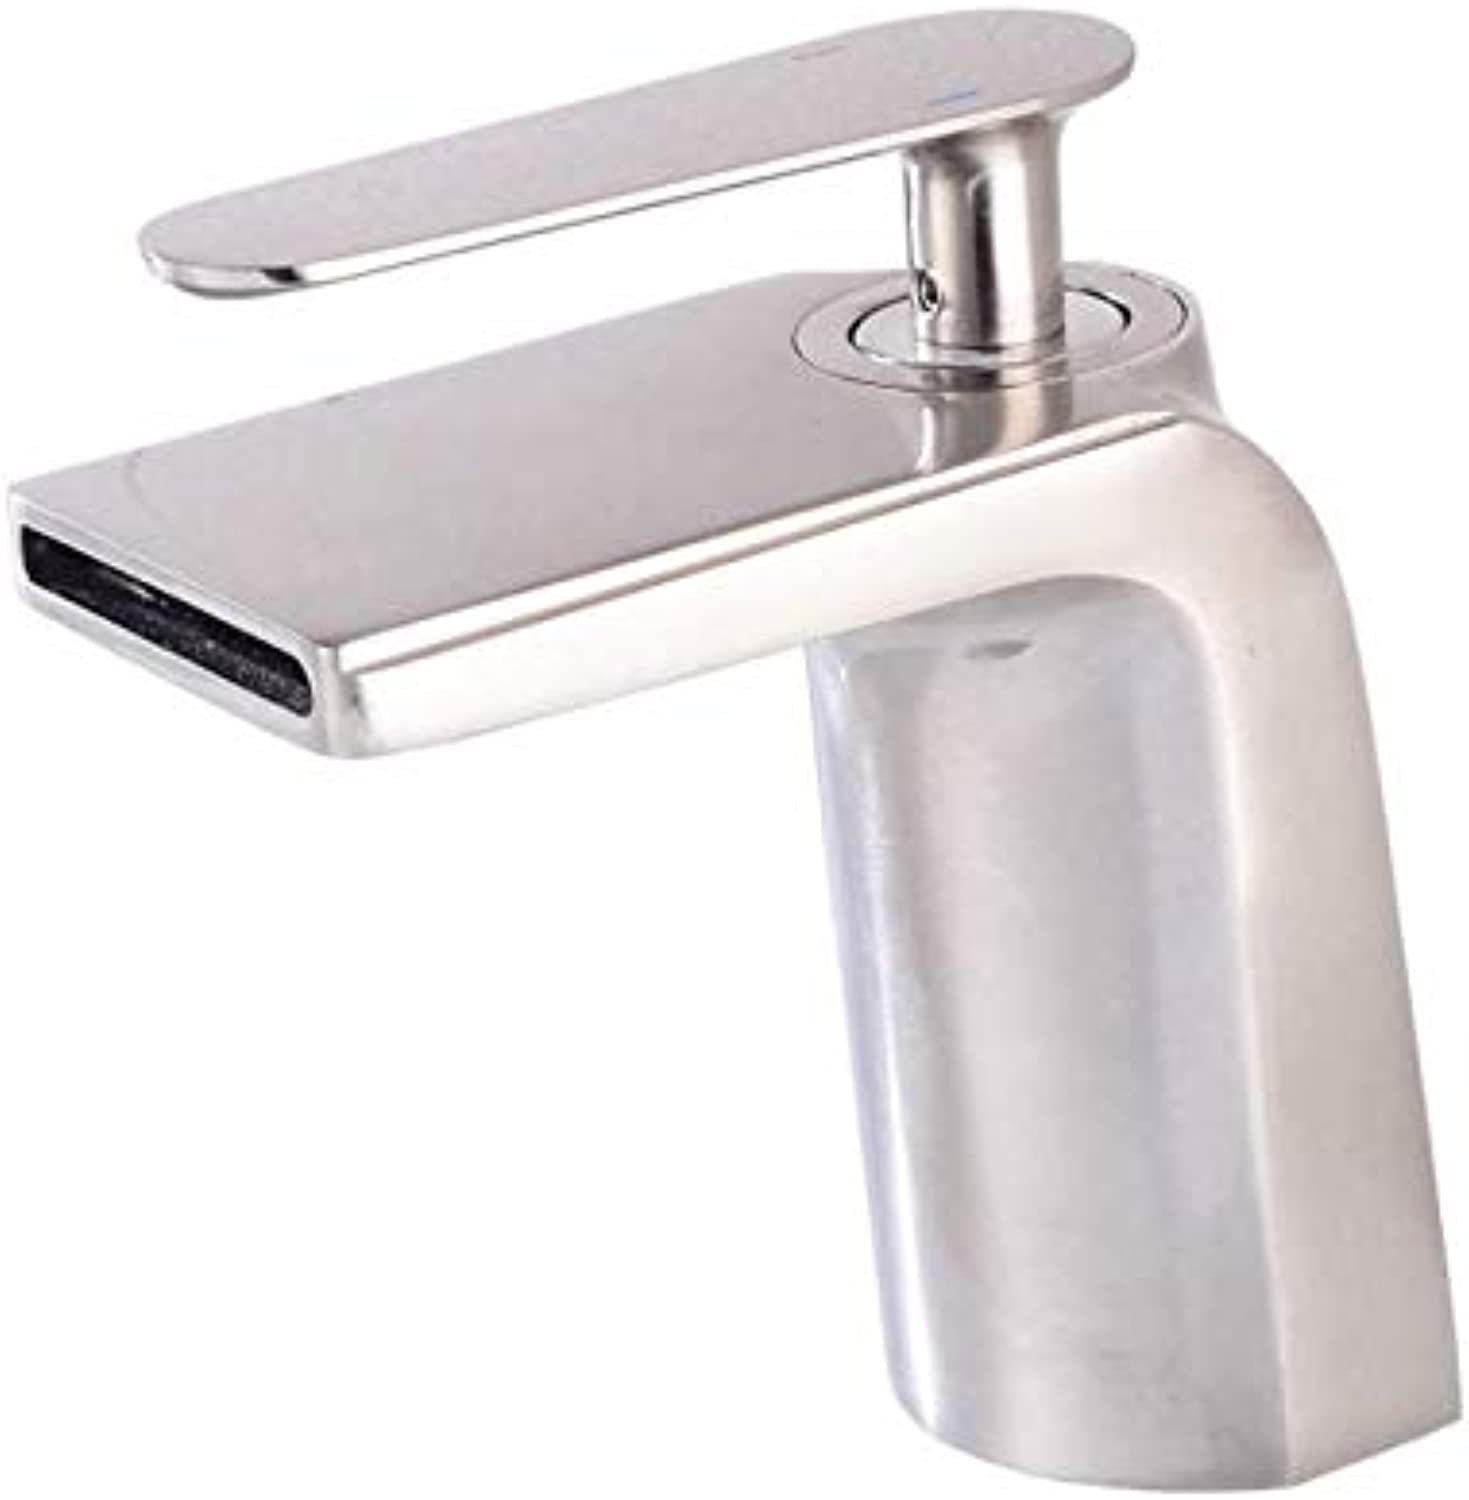 Stylish One-Handle Waterfall Faucet Bath Deck Mounted Toilet Single Lever Mixer Faucet Brushed Nickel